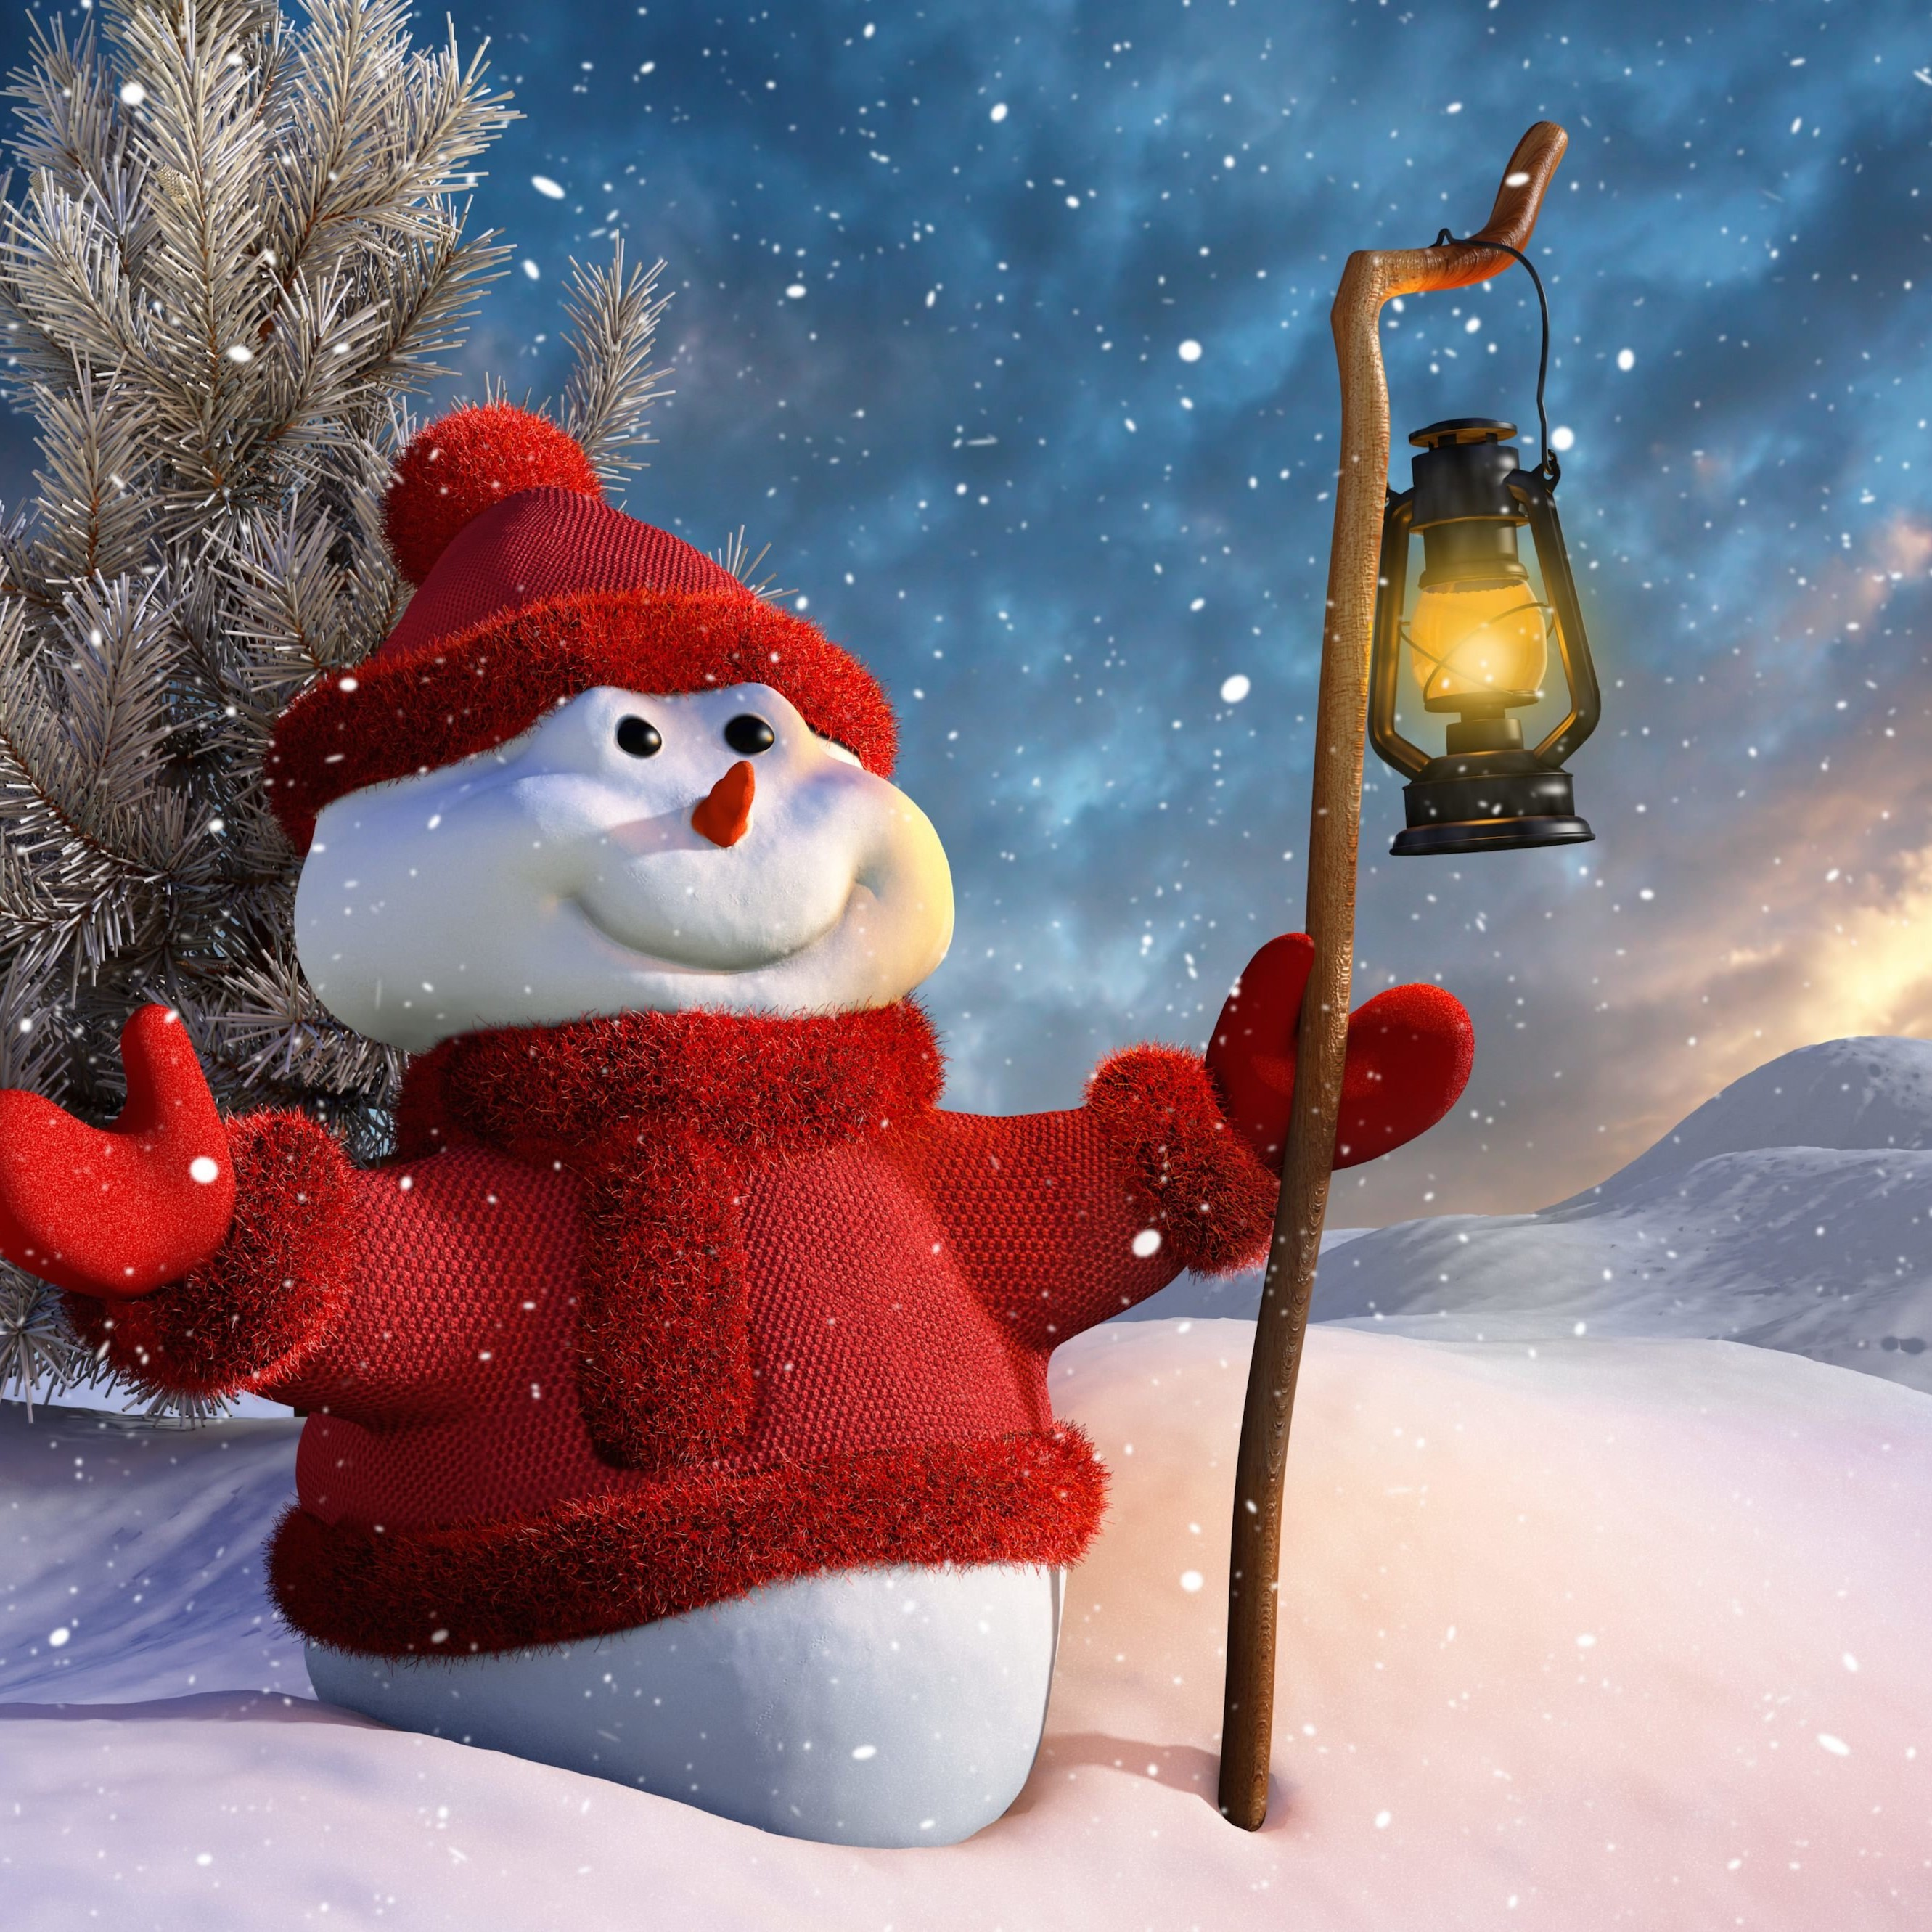 Christmas Snowman Wallpaper for Apple iPhone 6 Plus